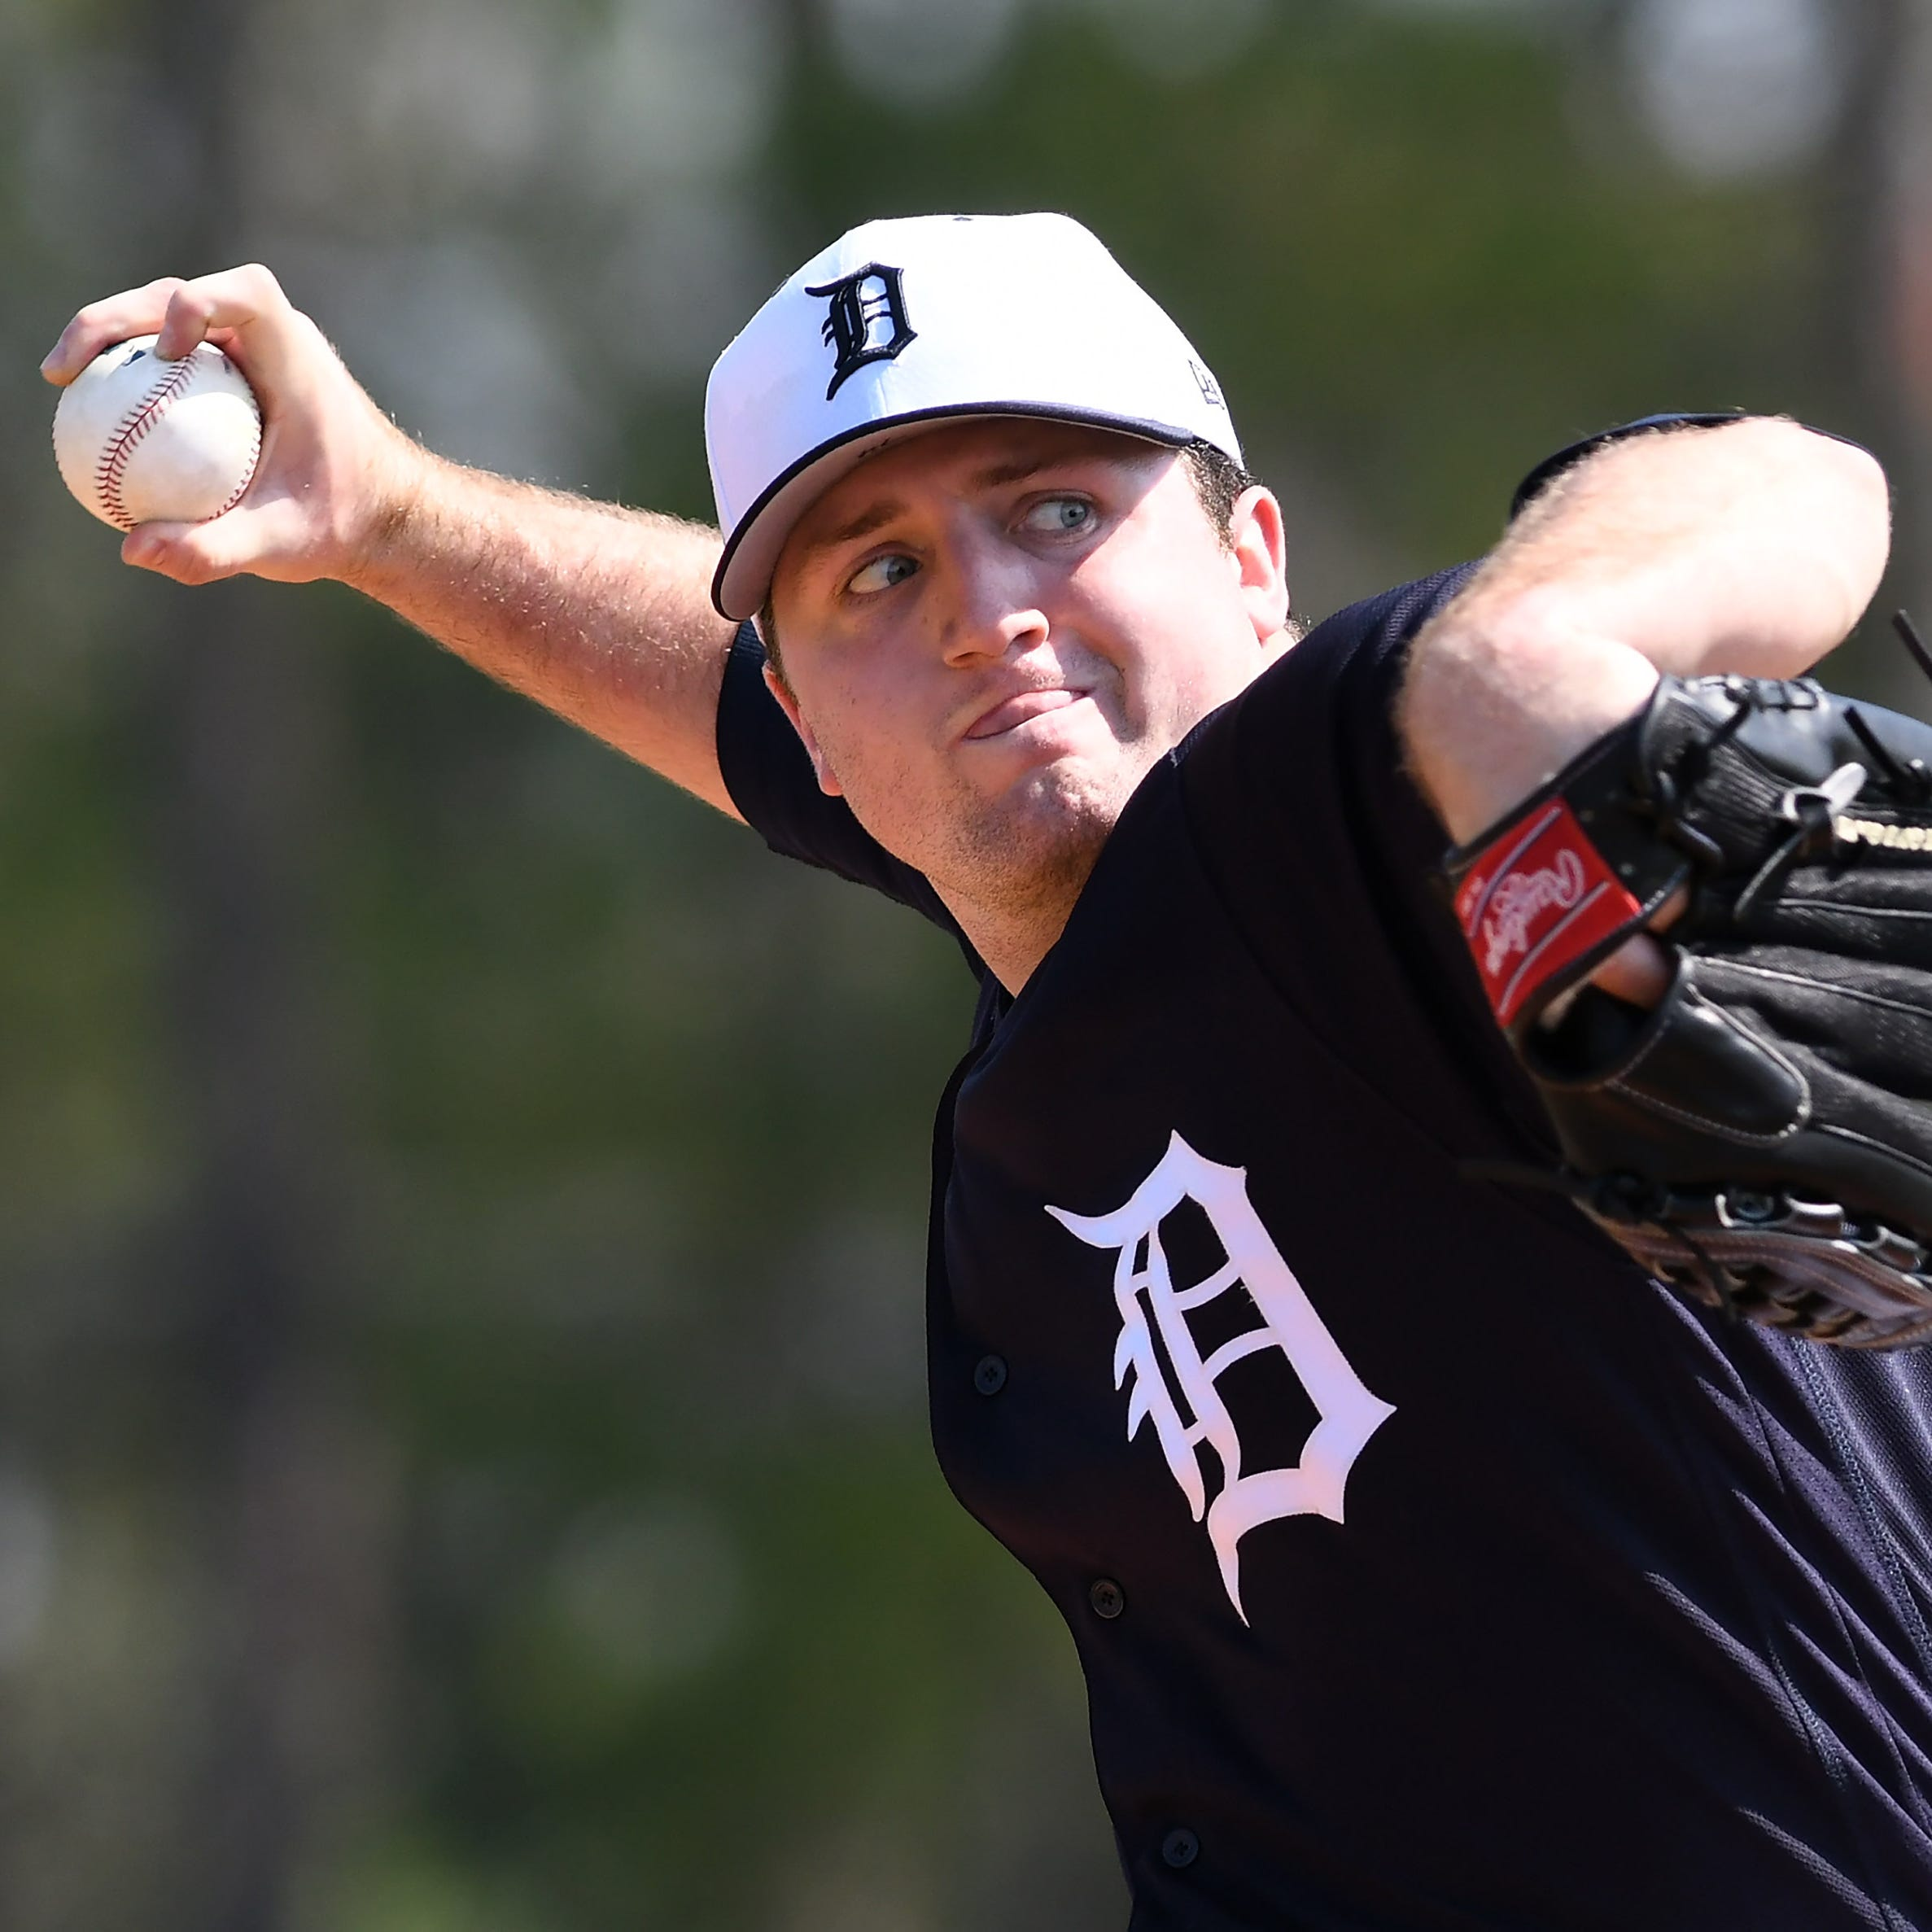 'That's what I strive for': Tigers' top prospect Casey Mize not surprised by early success